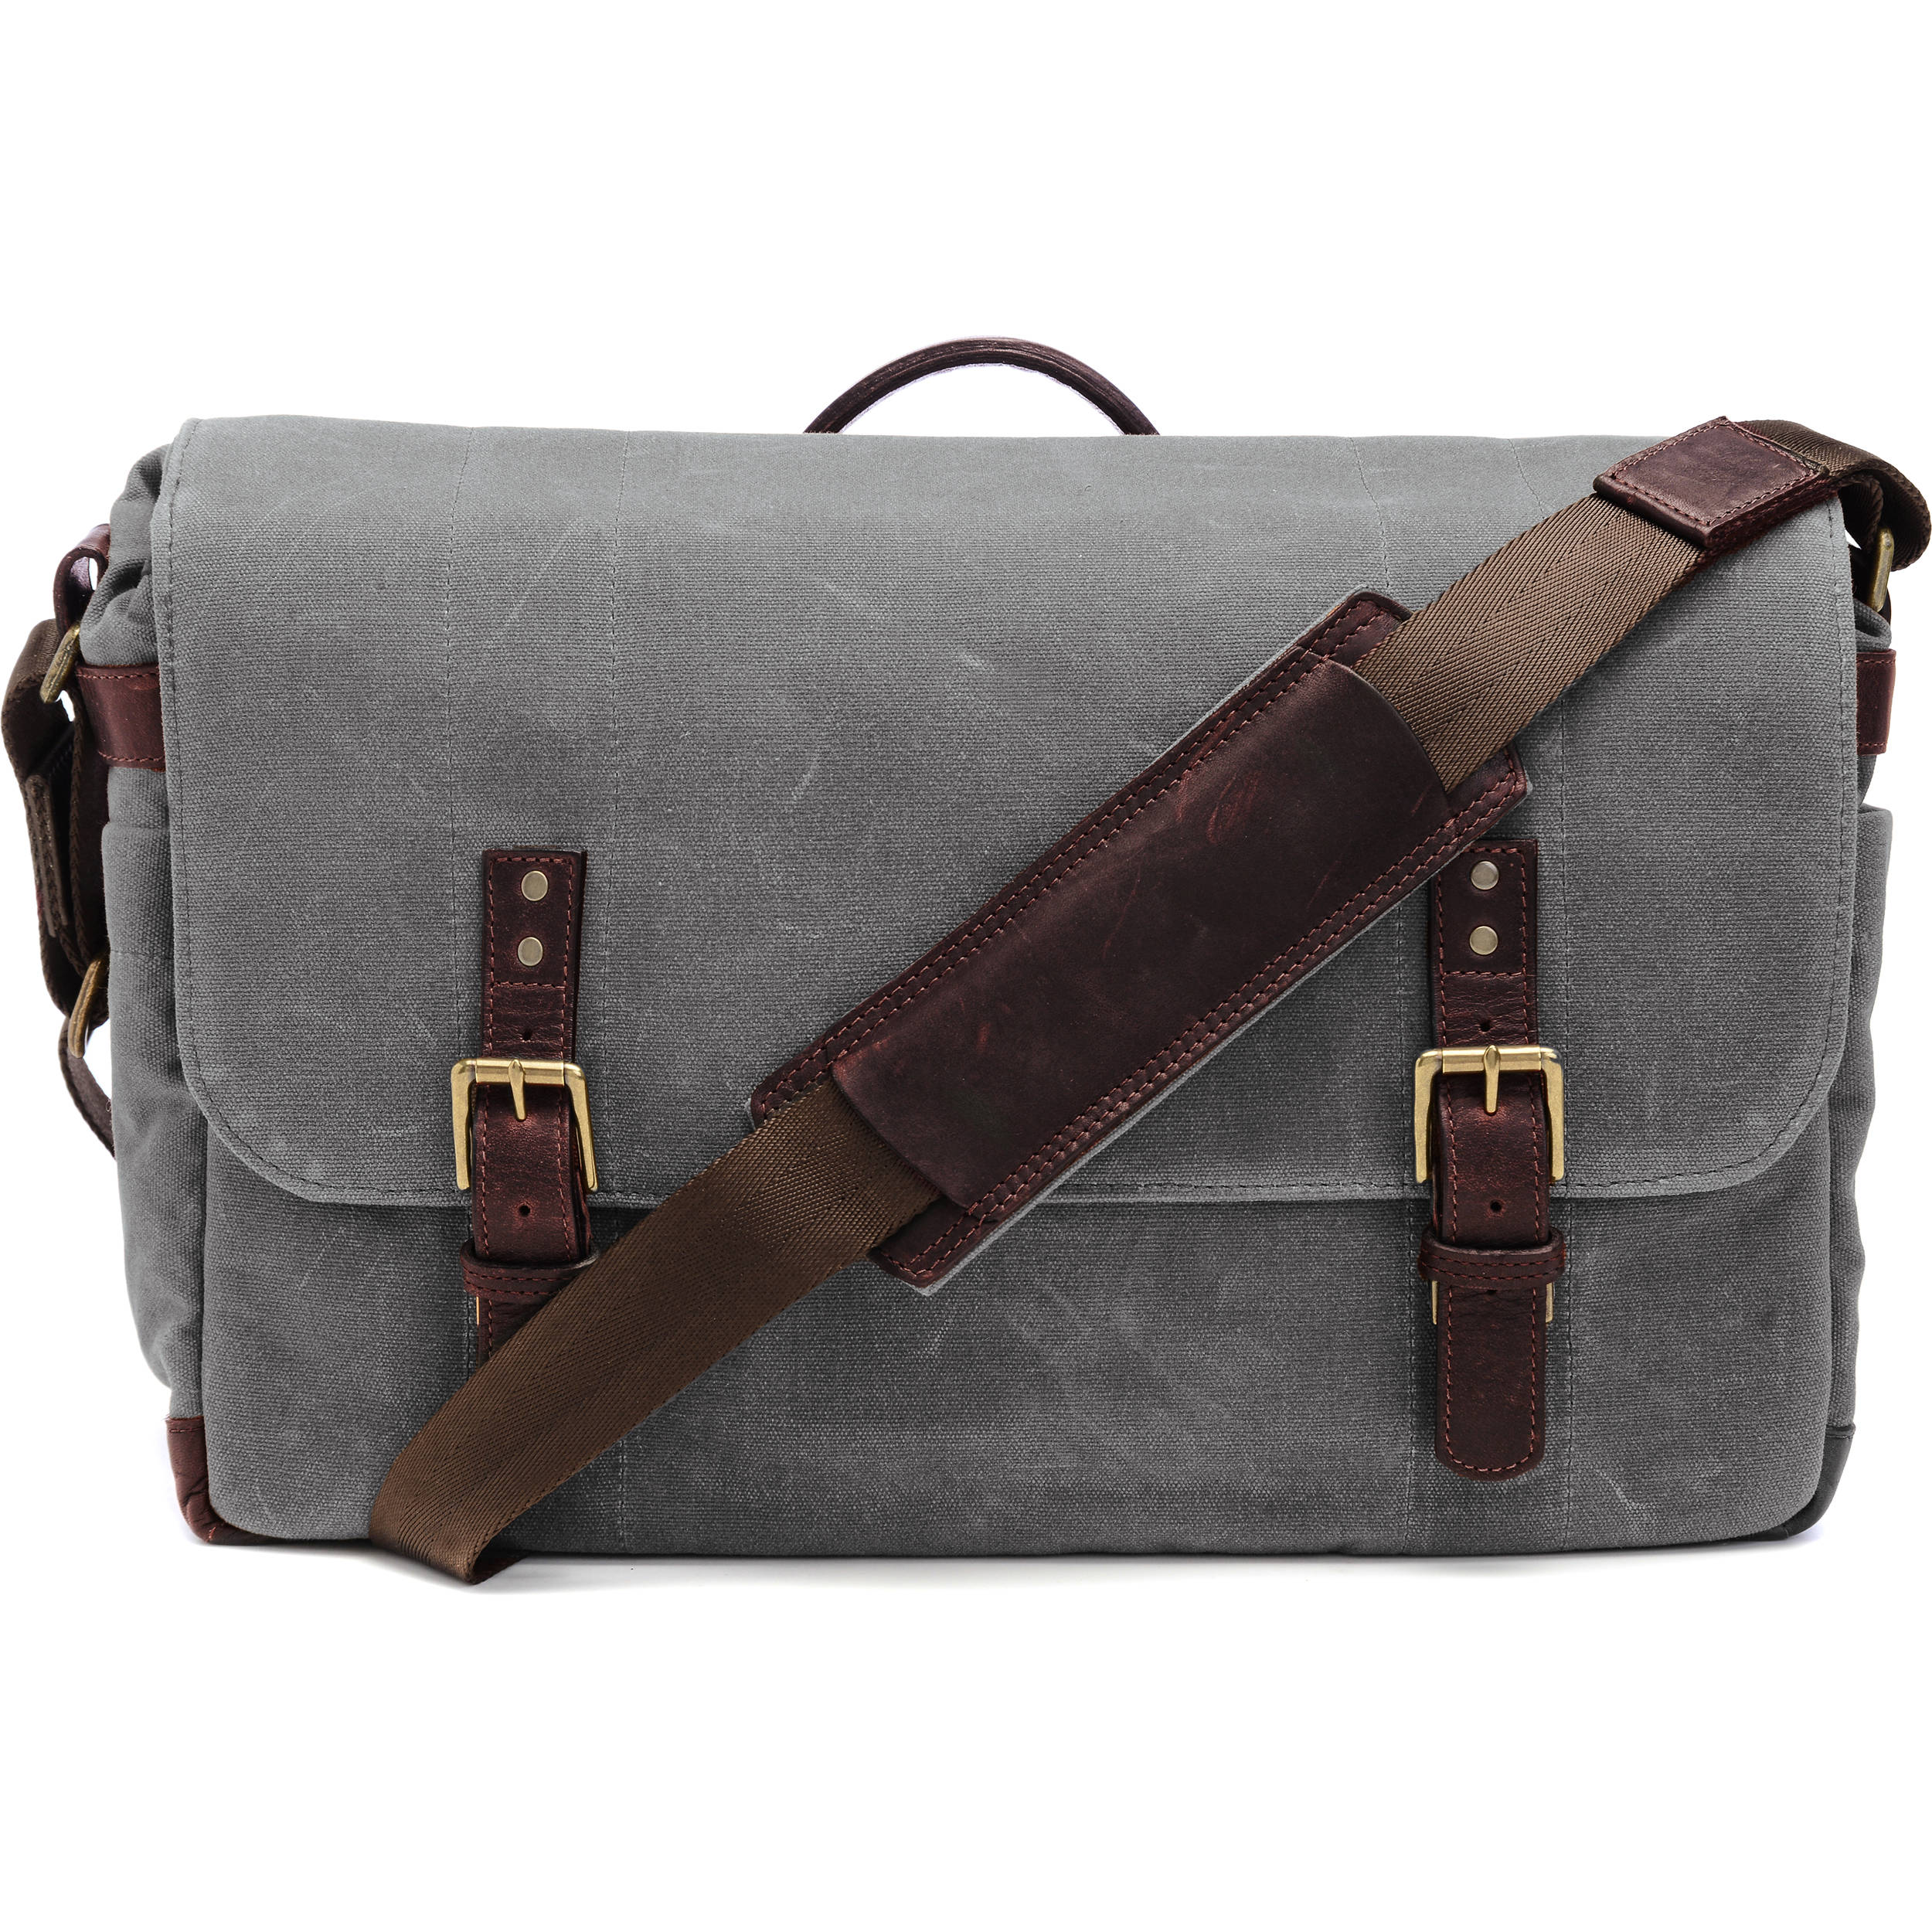 Ona The Union Street Messenger Bag Smoke Waxed Canvas Leather